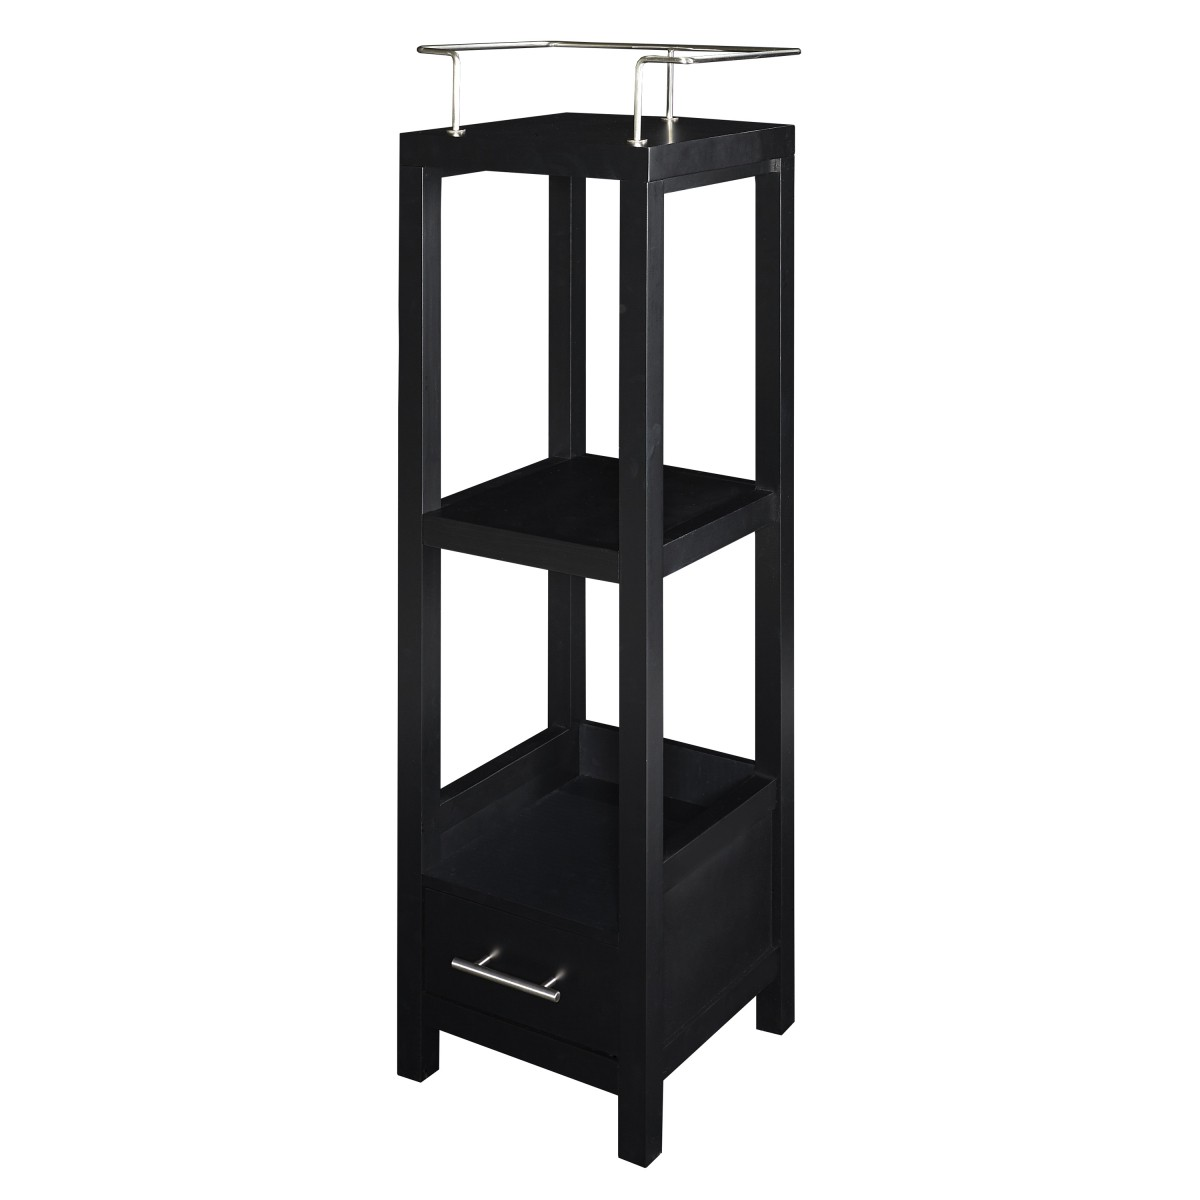 Home Decor Products Inc: Linon Home Decor Products Inc. Hoover Black Tall Storage